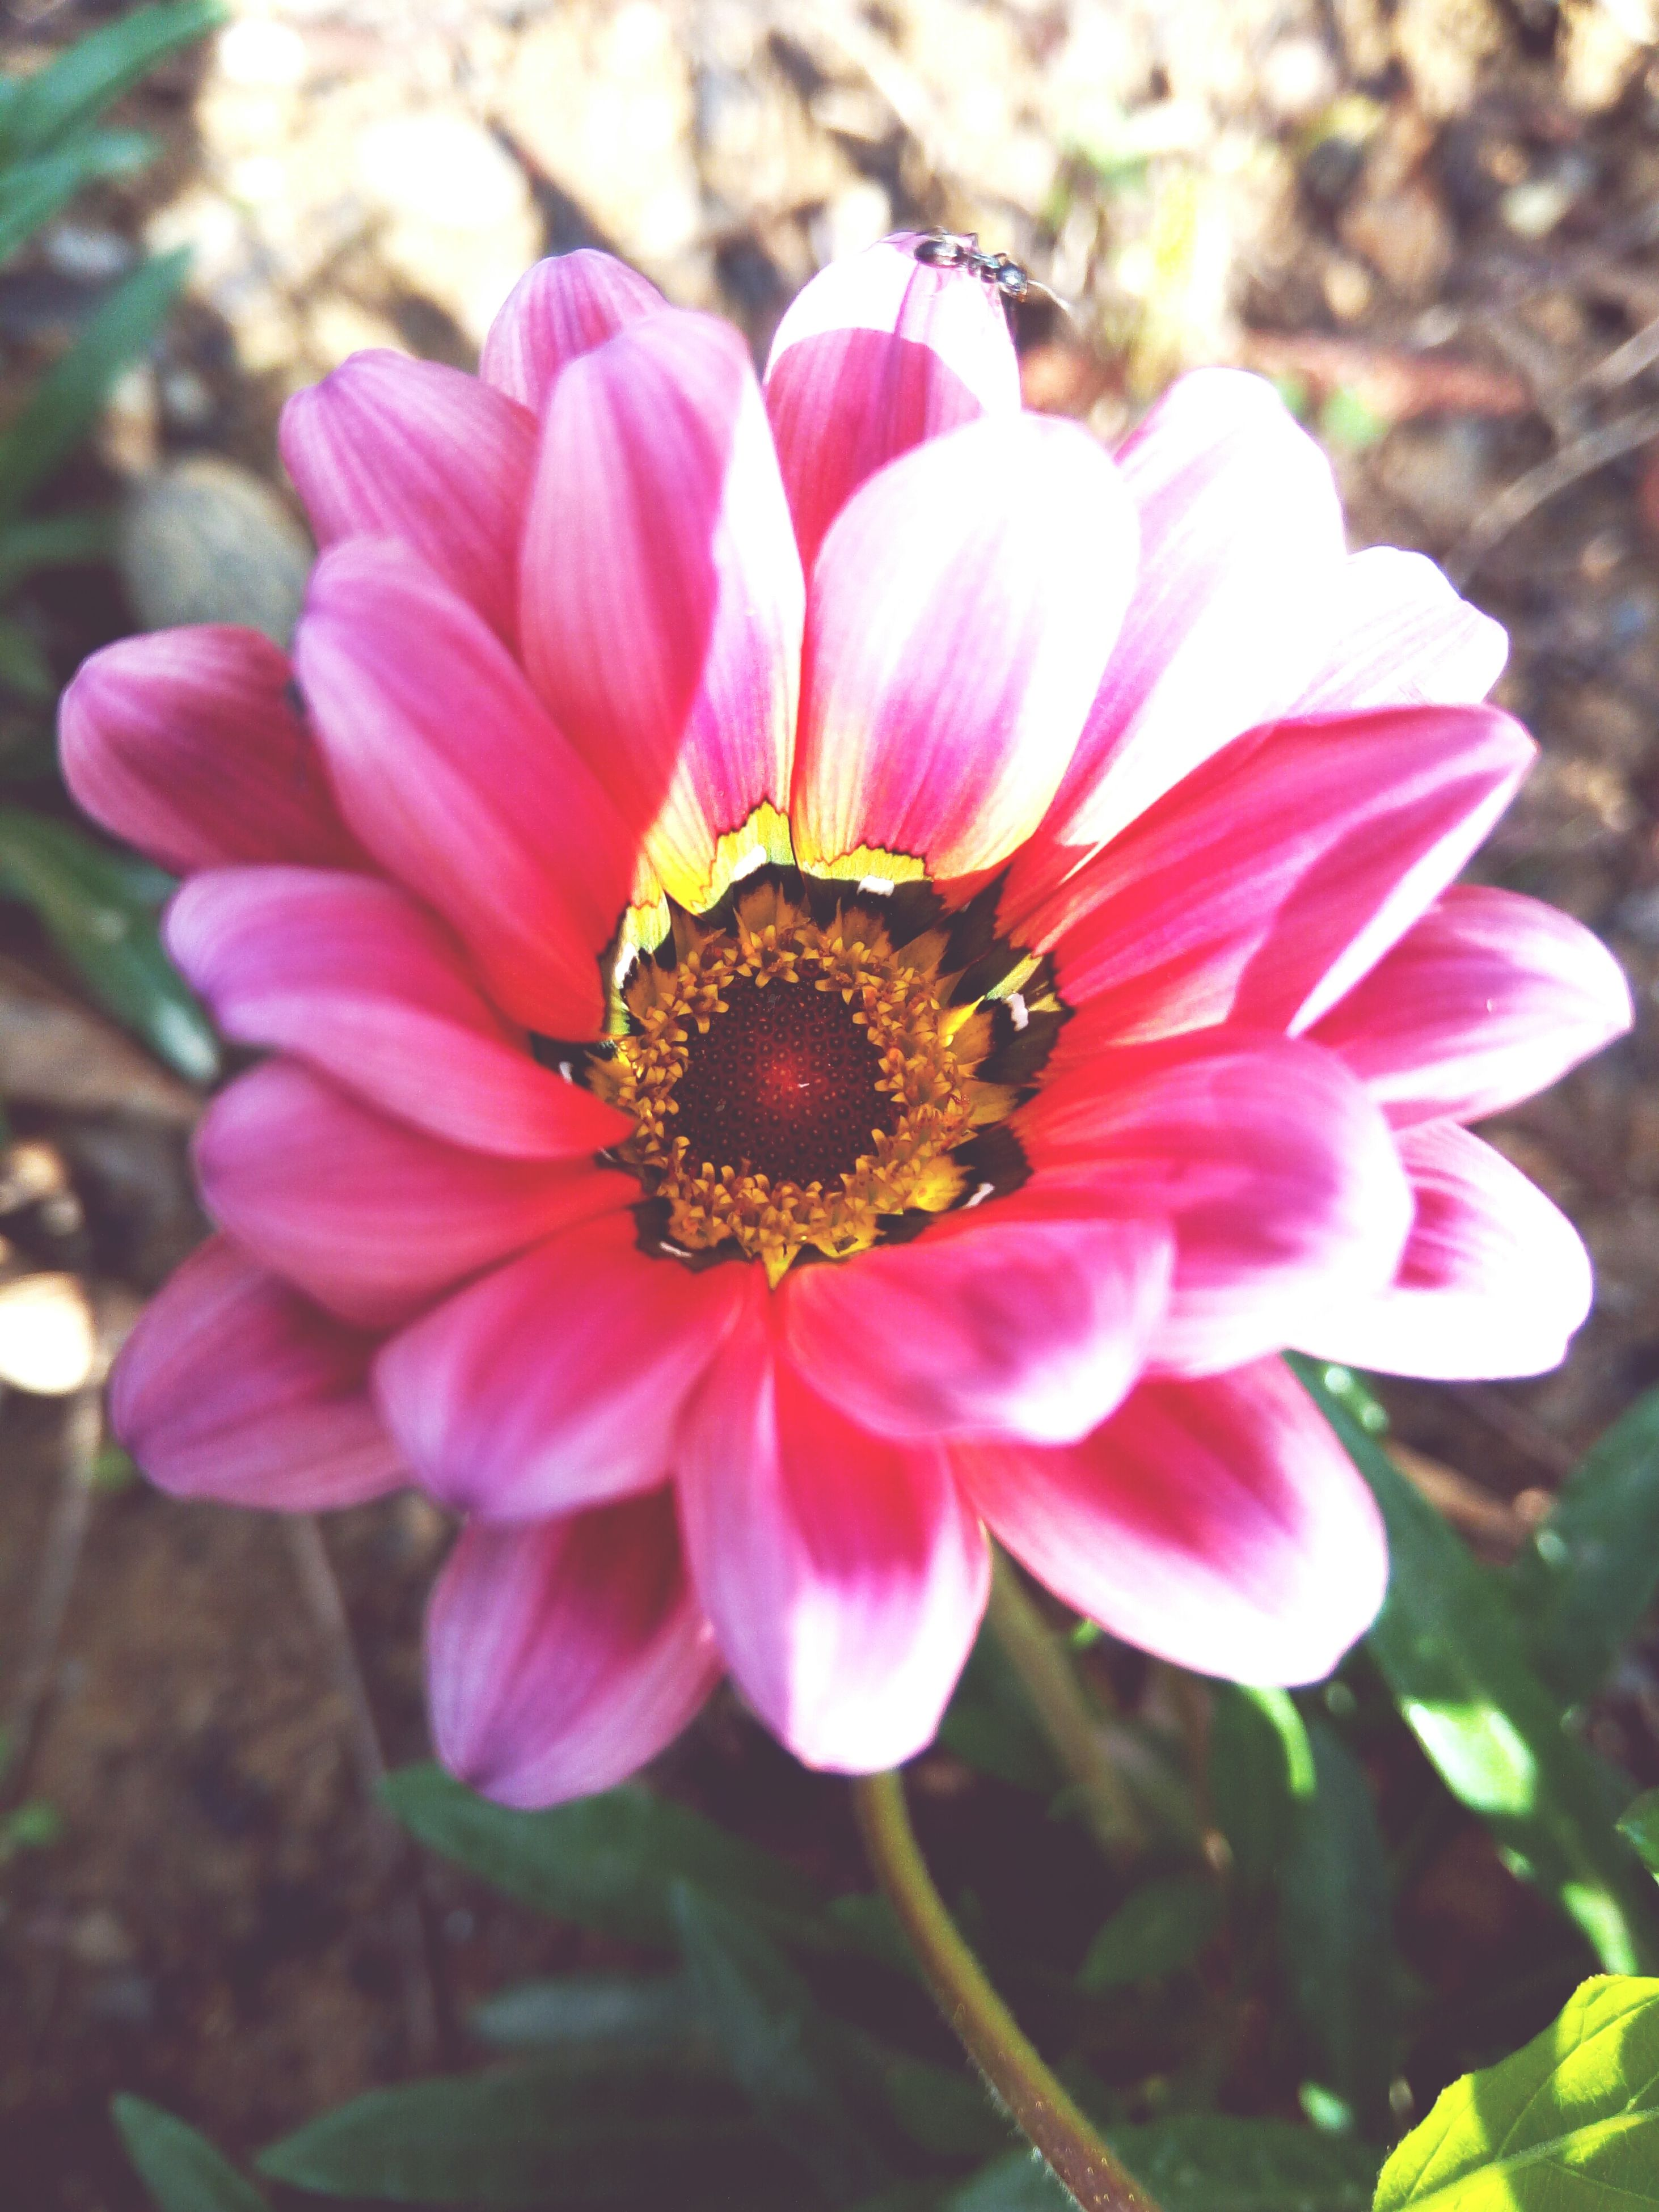 flower, petal, fragility, beauty in nature, nature, freshness, flower head, growth, blooming, pollen, outdoors, day, no people, zinnia, close-up